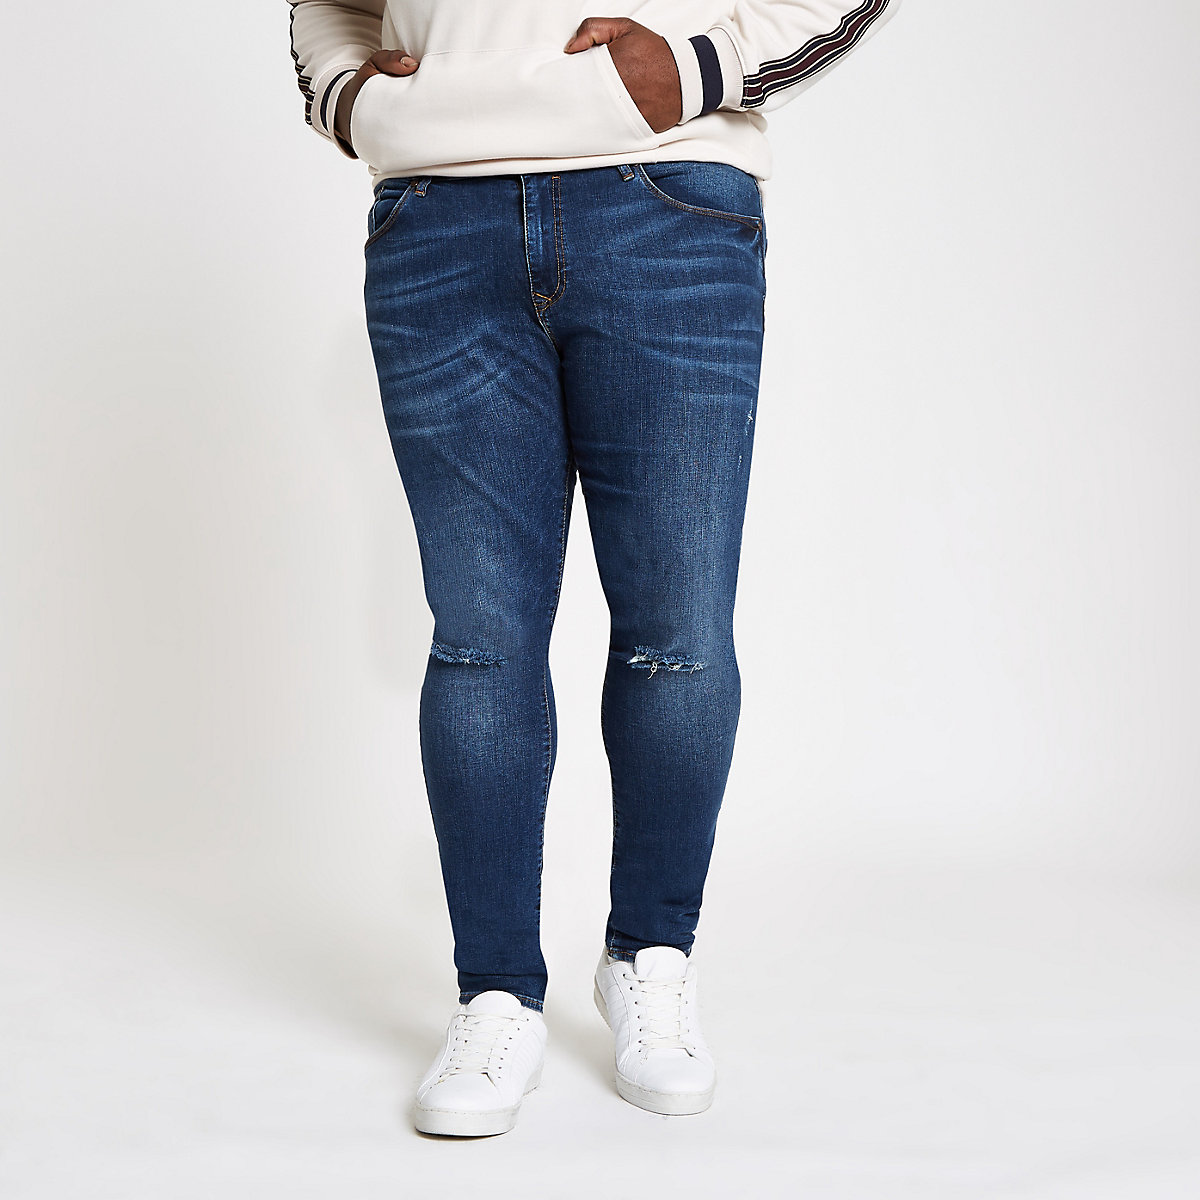 Big & Tall – Dunkelblaue Super Skinny Jeans